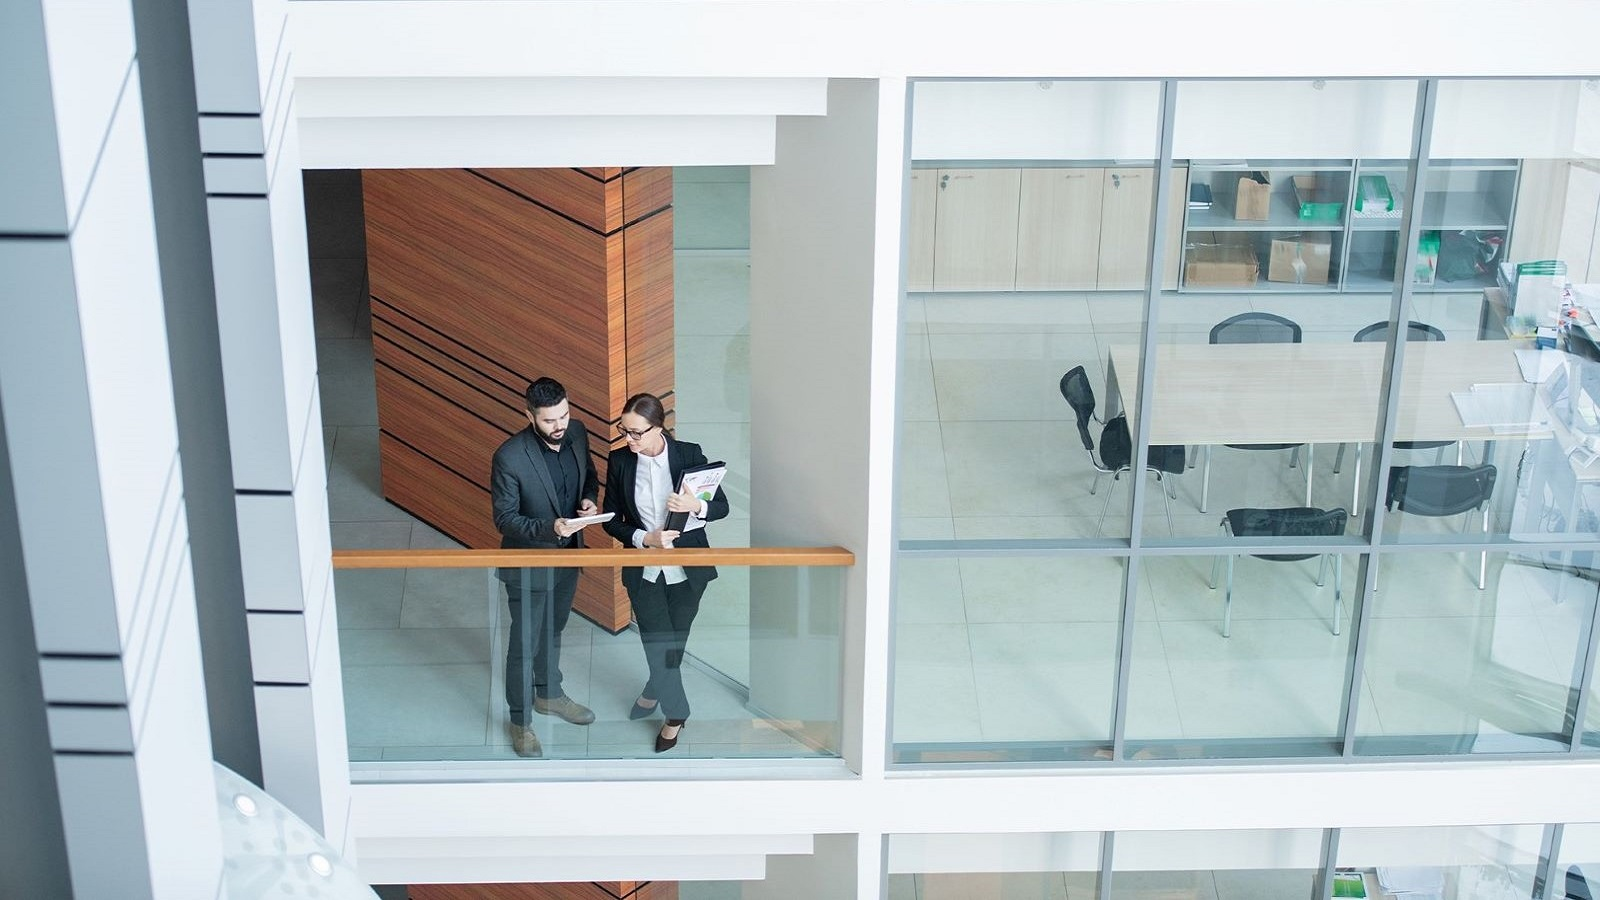 Workers at balcony shutterstock 1634800297